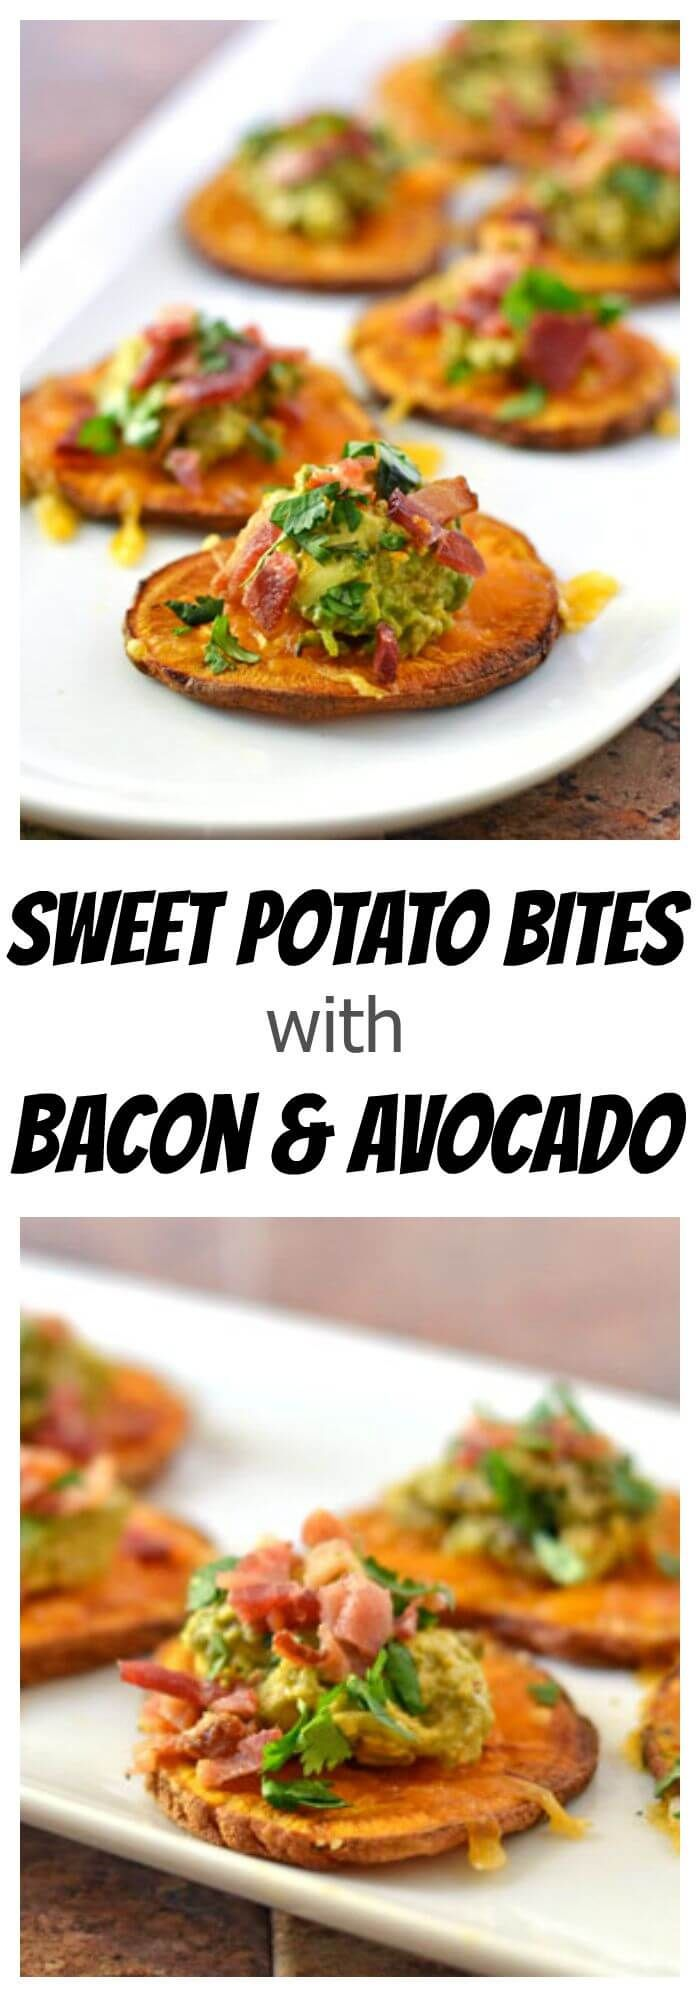 February 22, 2016 is National Cook a Sweet Potato Day. Help your audience celebrate by sharing your opinion of this Sweet Potato Bites with Avocado and Bacon recipe with them.  Join the Nutrition Entrepreneurs Mastermind for free, for more resources to help you Get Nutrition Clients. http://www.GetNutritionClients.com/nem